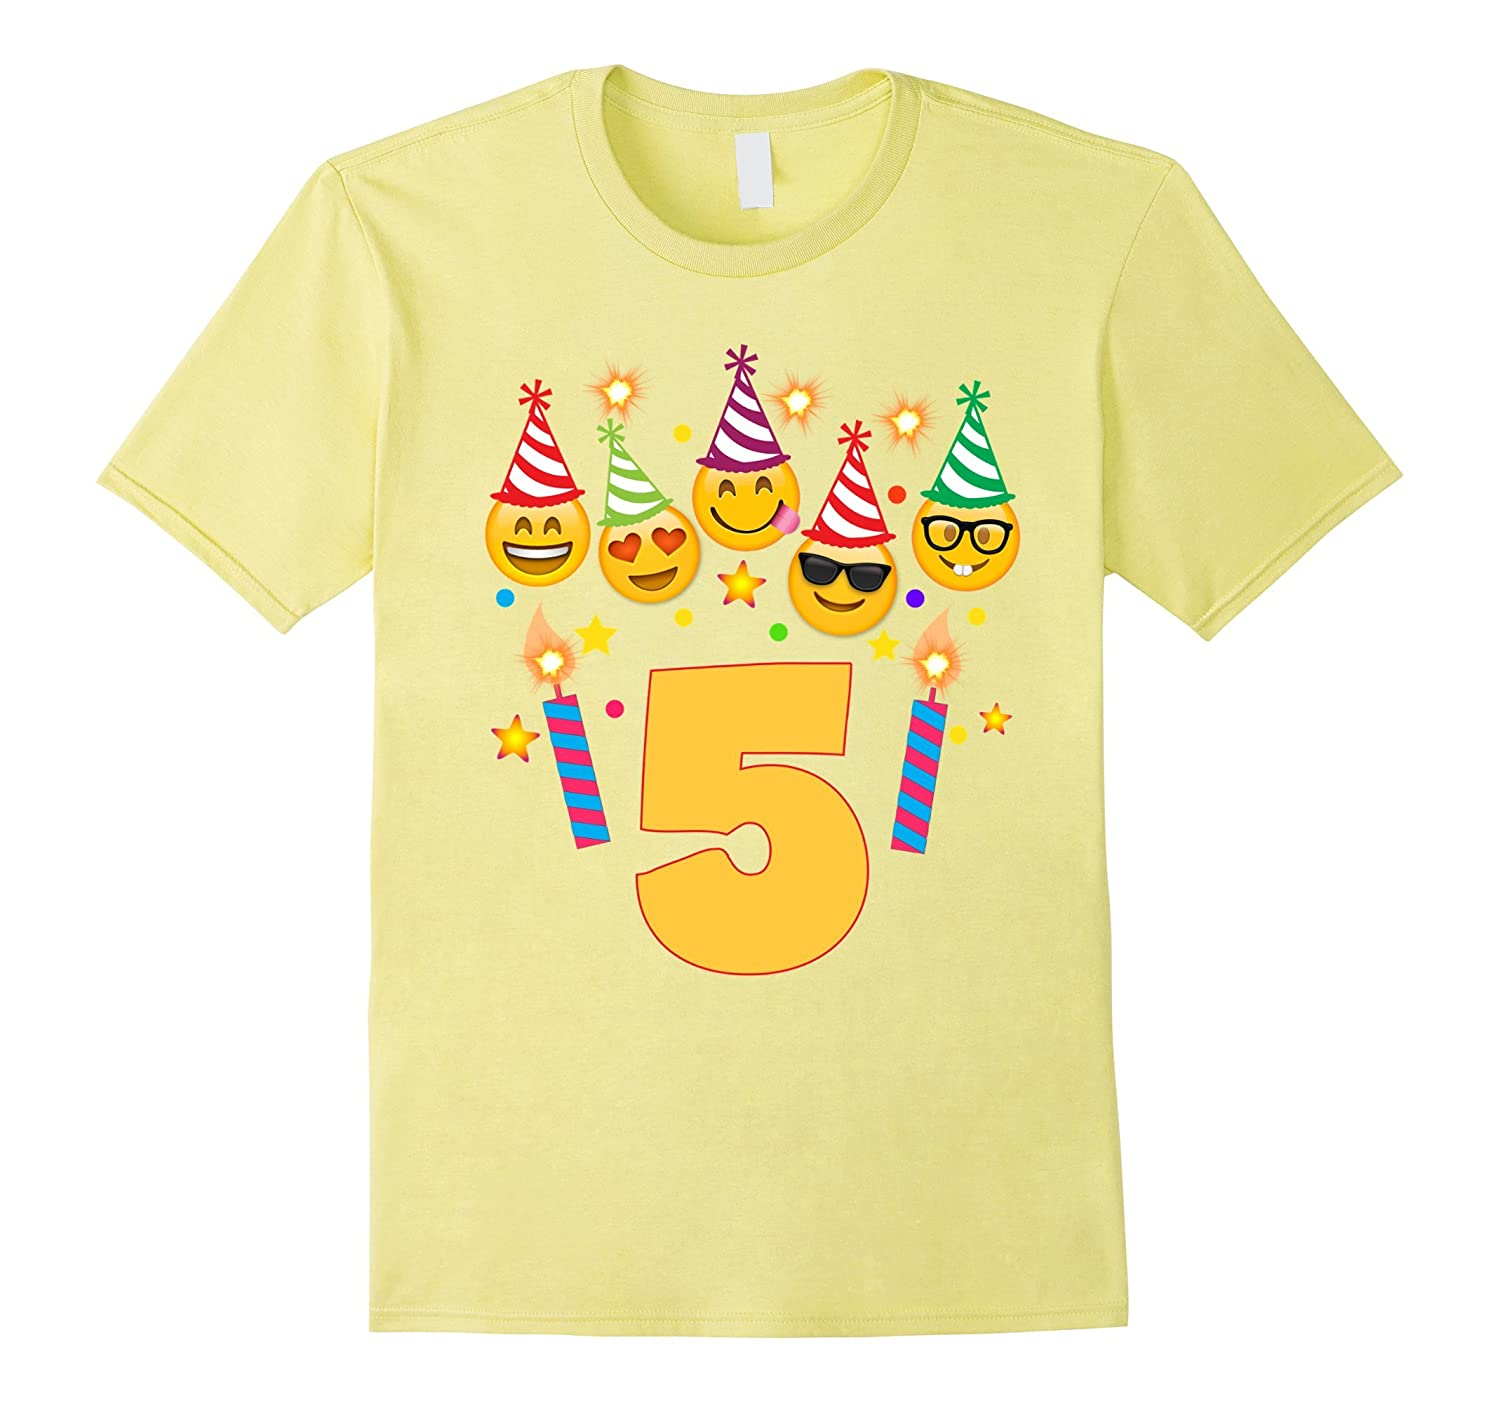 Emoji Birthday Shirt For 5 Five Year Old Girl Boy Toddler CL Colamaga